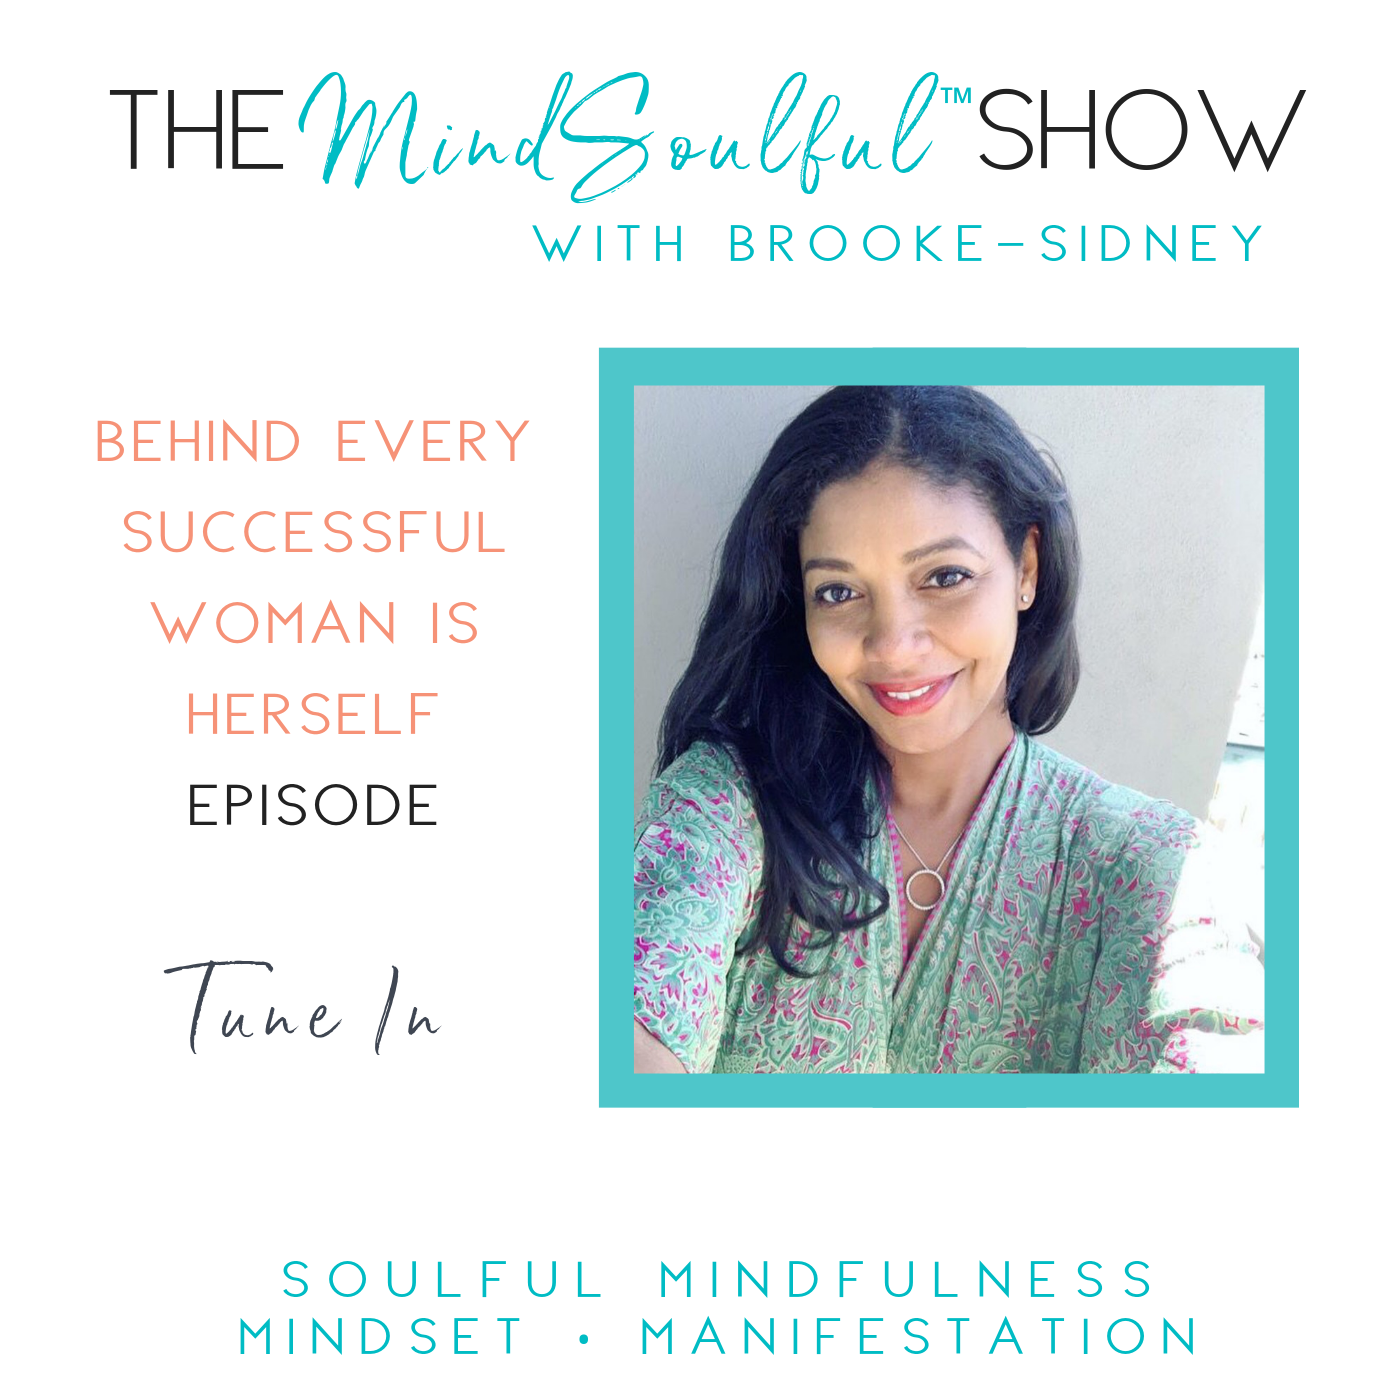 The MindSoulful Show - BEHIND EVERY SUCCESSFUL WOMAN IS HERSELF  EPISODE.png